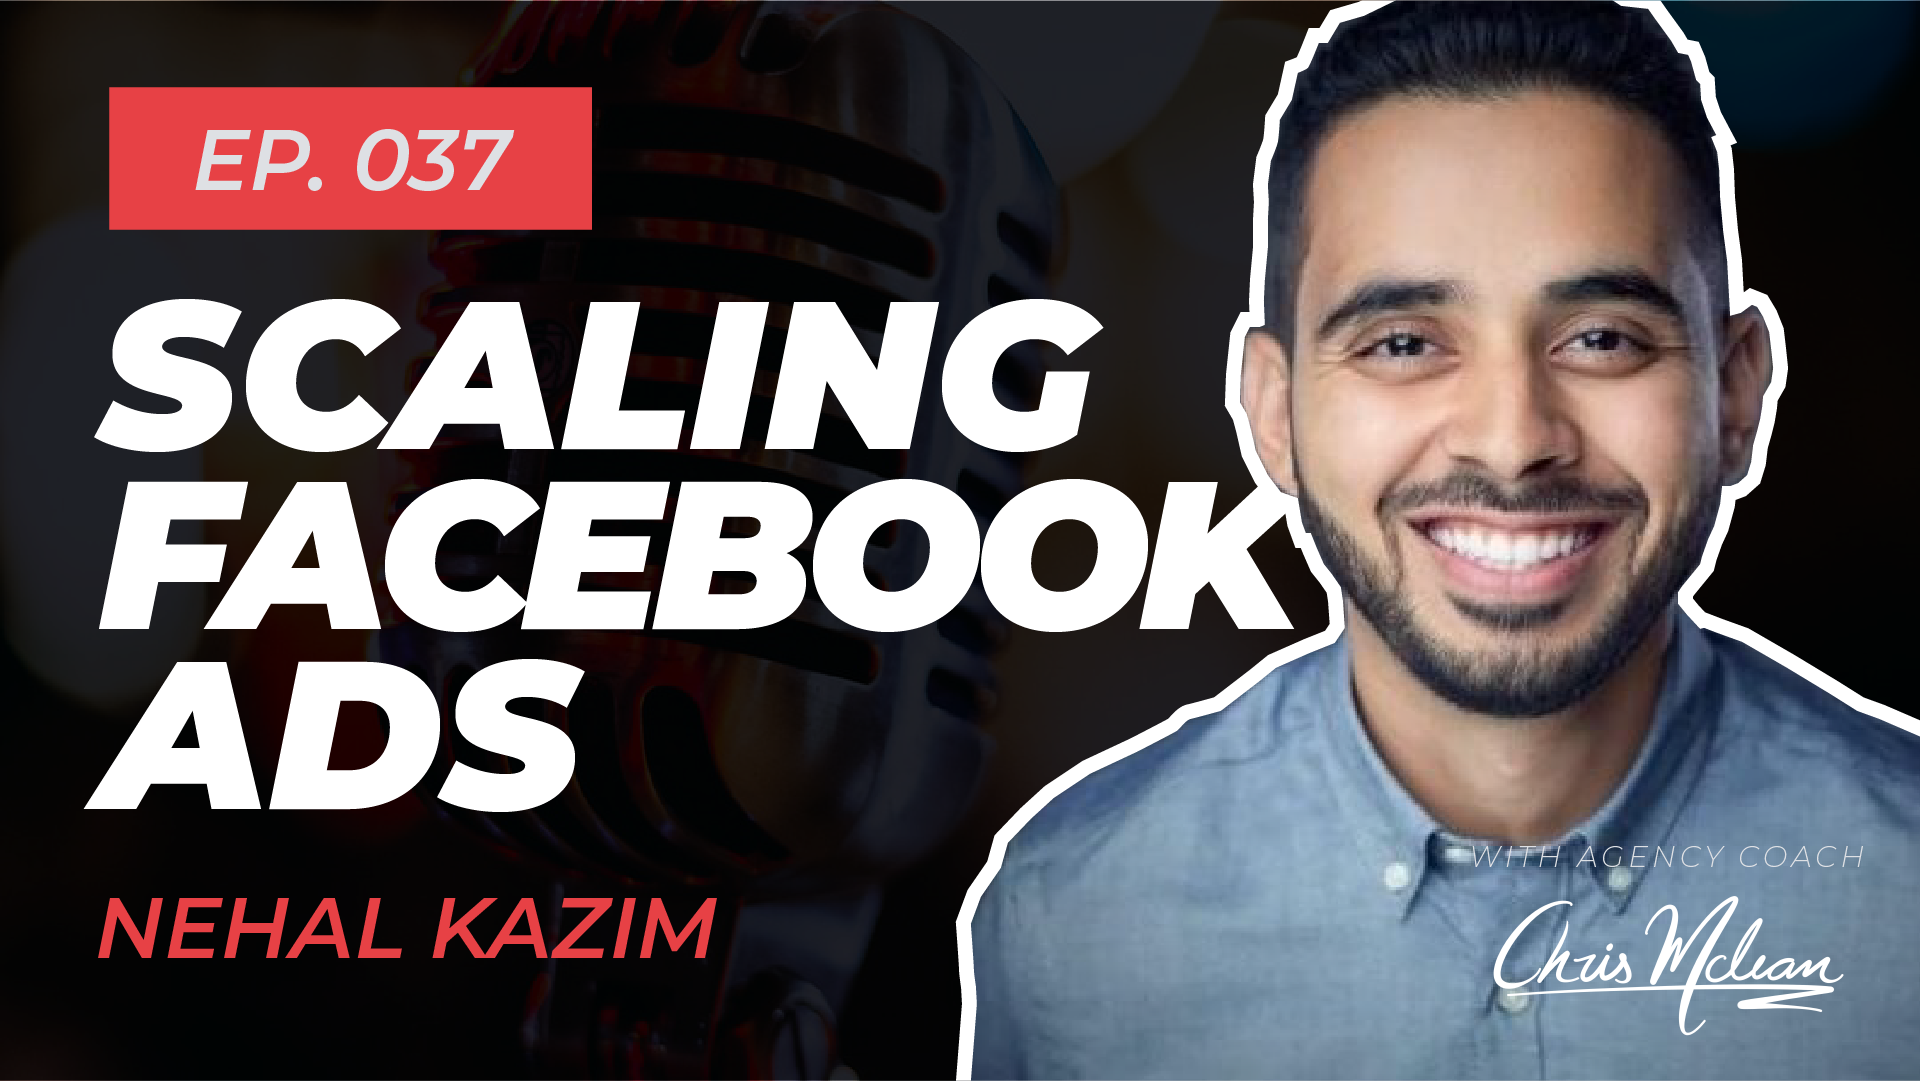 EP037 | Scaling Facebook Ads with Nehal Kazim